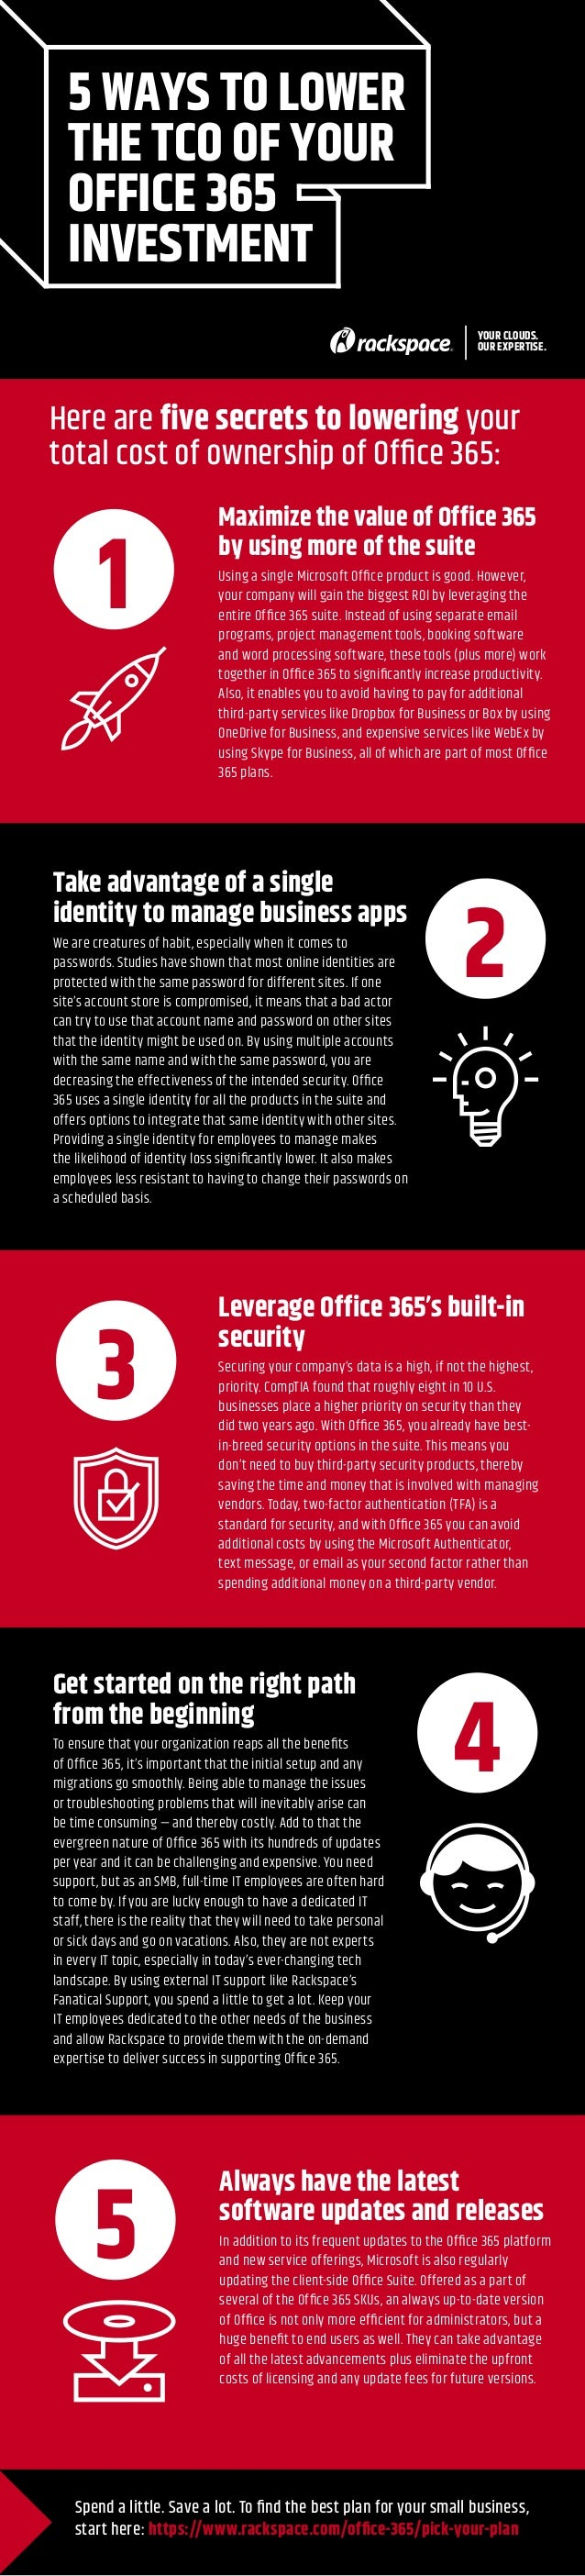 INFOGRAPHIC: Five Ways to Lower Total Cost of Ownership of Office 365